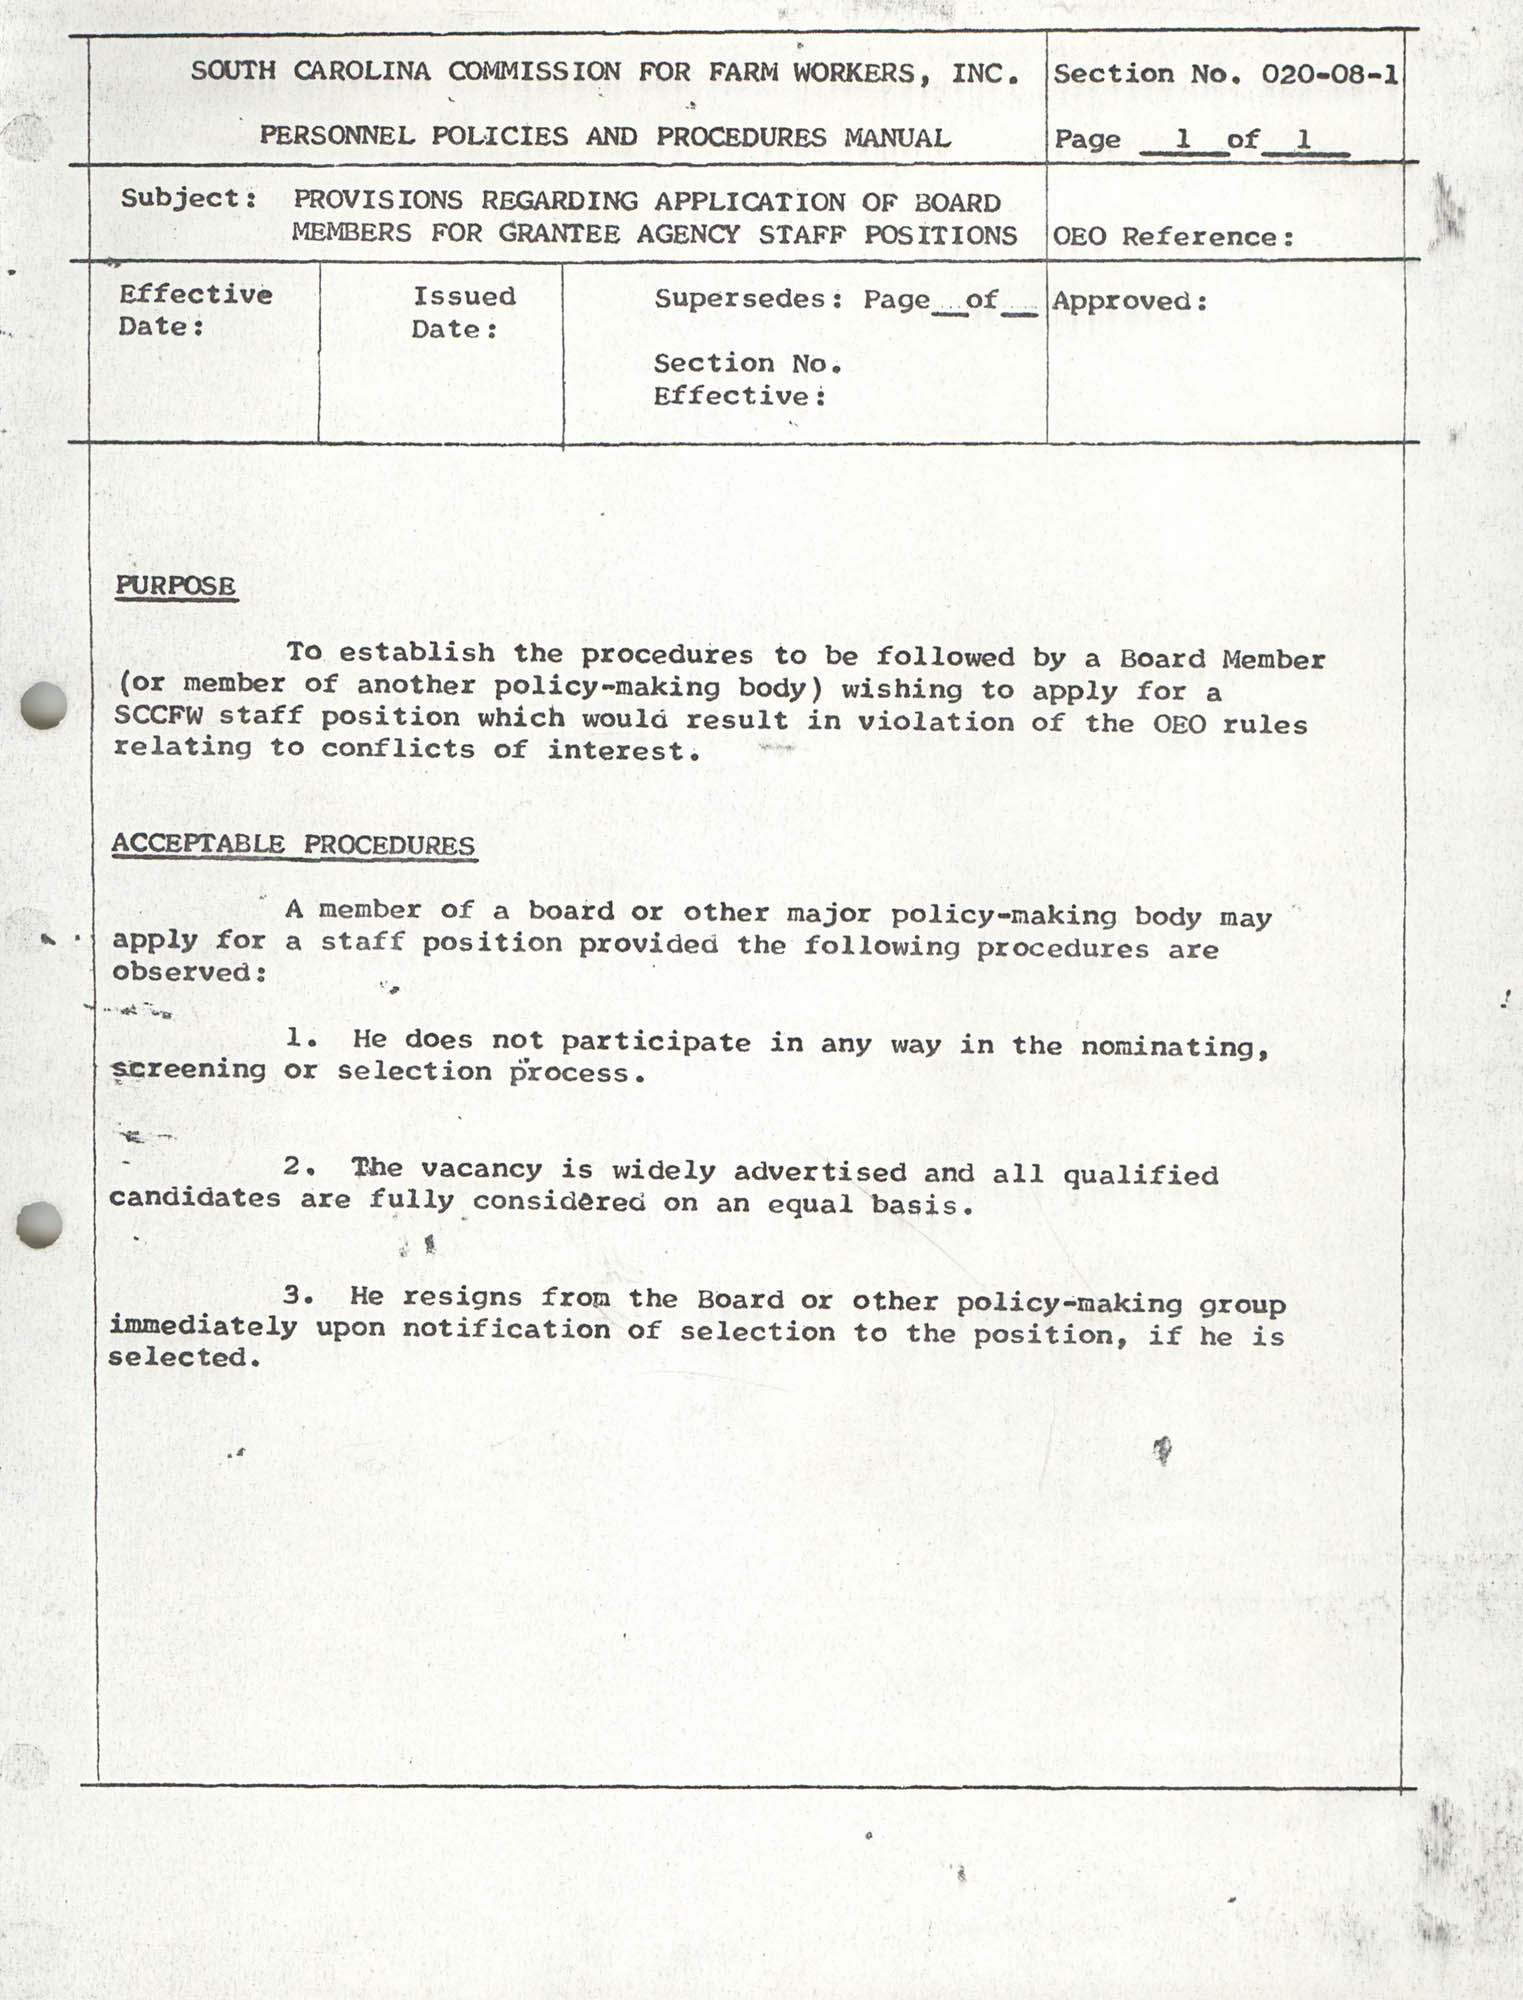 Personnel Policies and Procedures Manual, Section No. 020-08-1